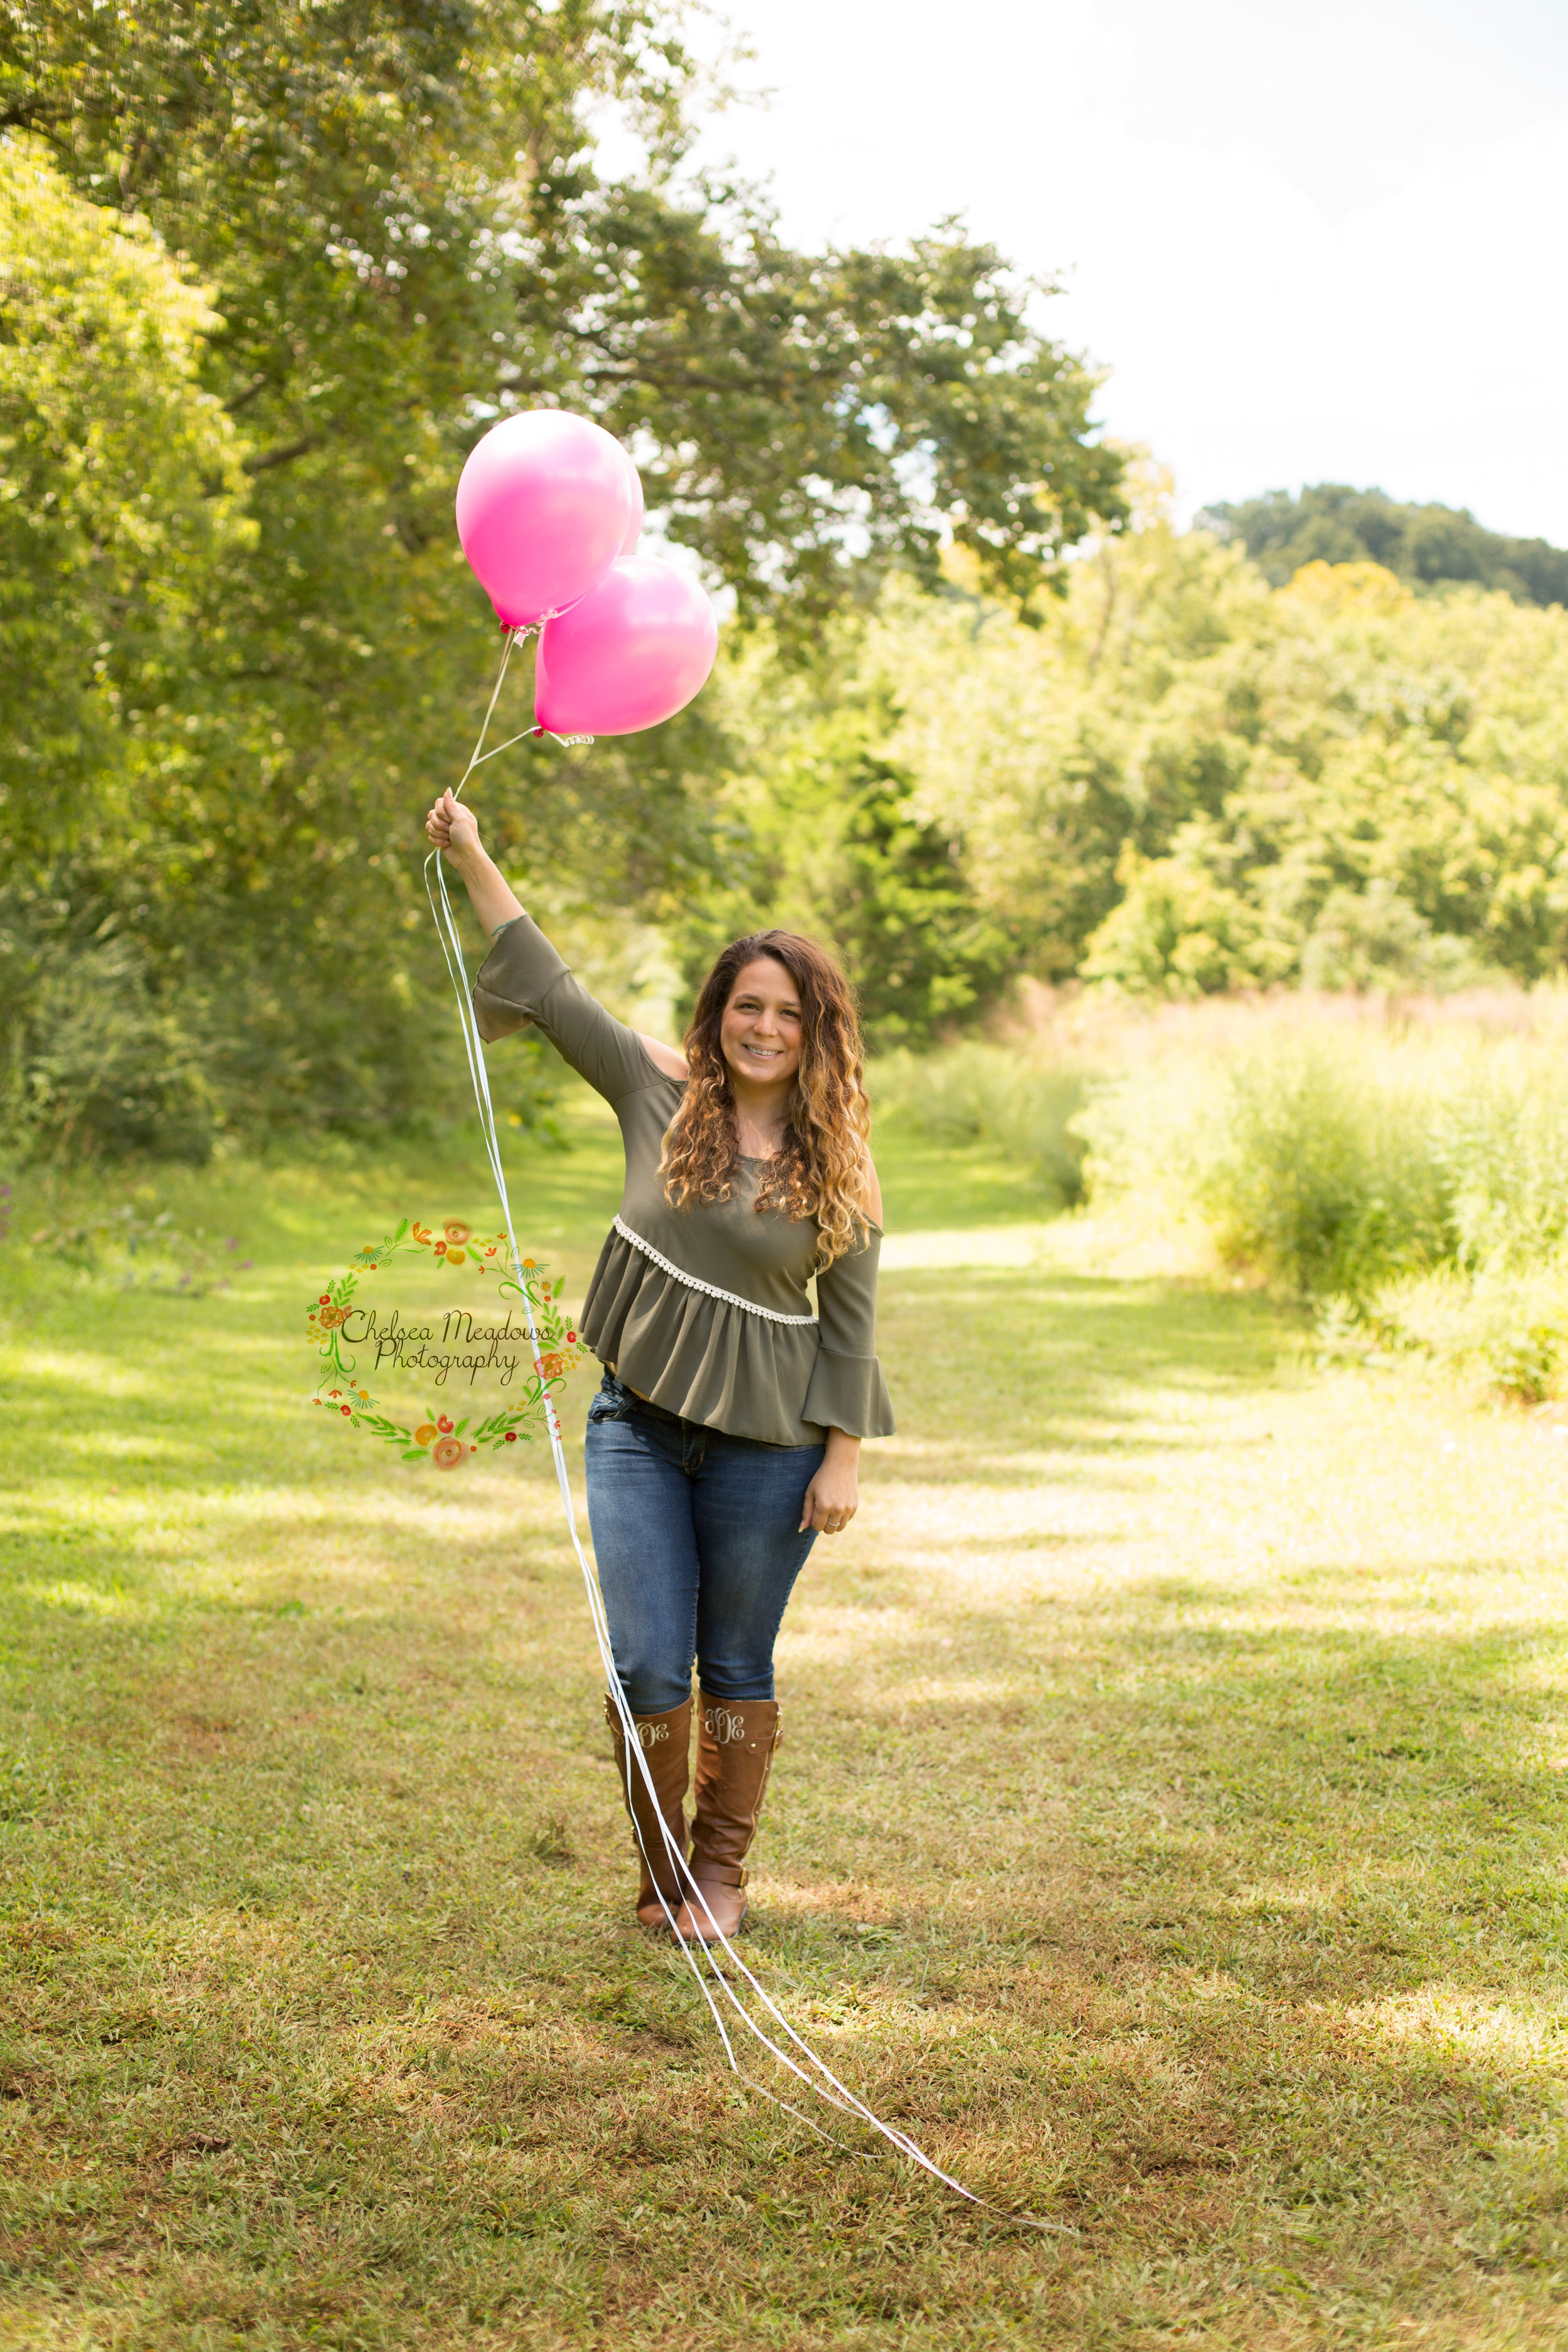 Jessica Gender Reveal - Nashville Newborn Photography - Chelsea Meadows Photography (9)_edited-1.jpg